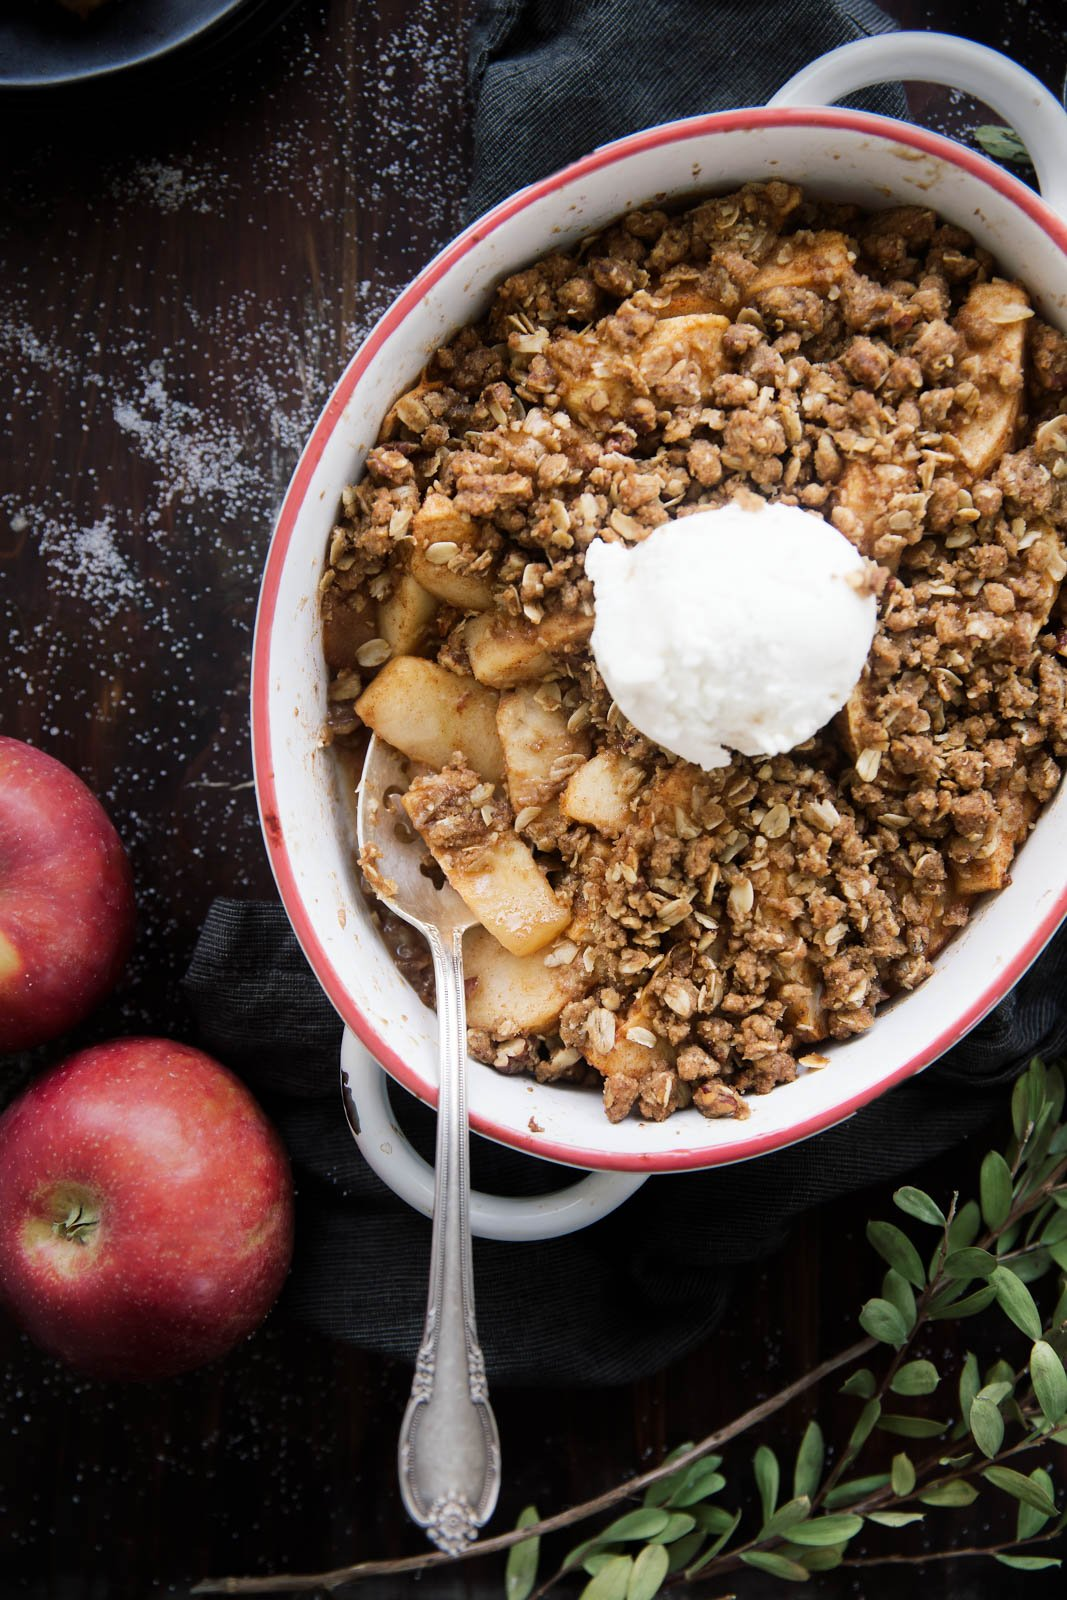 Maple pecan apple crisp in a baking dish with a spoon